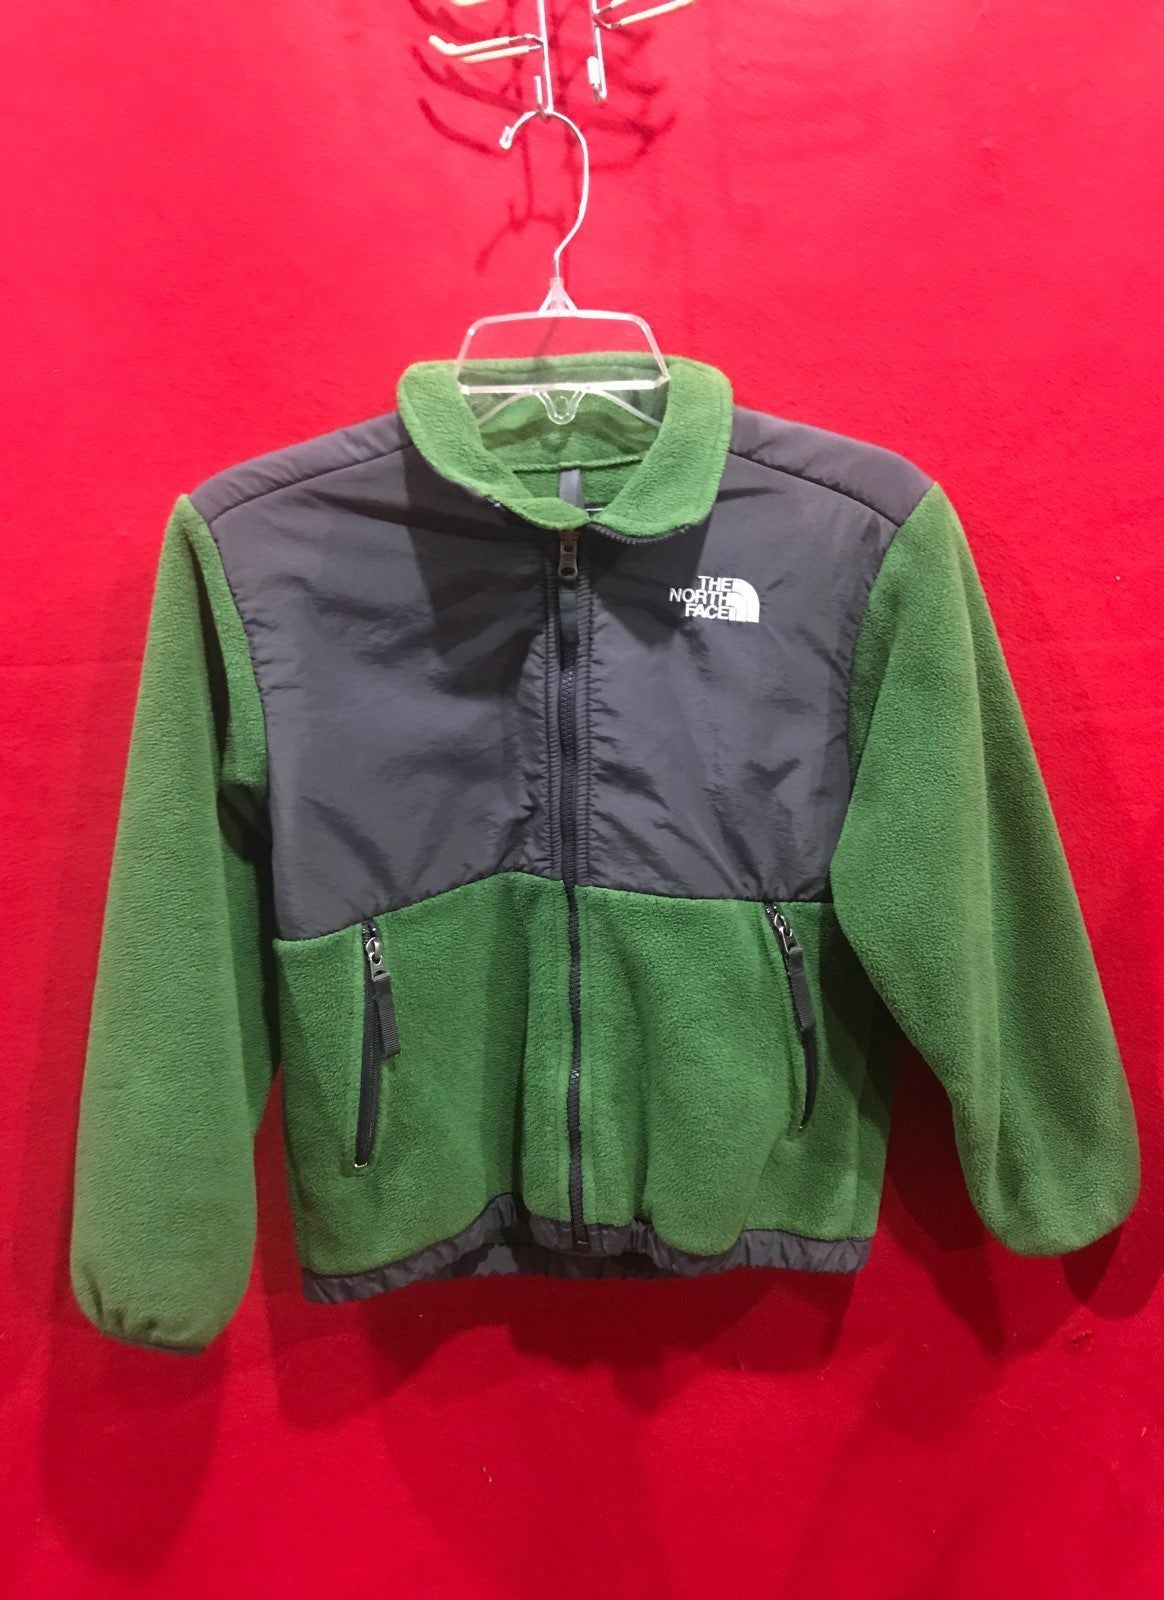 New North Face Jacket For Kids Age 10 12 Years Old North Face Coat The North Face North Face Jacket [ 1600 x 1164 Pixel ]